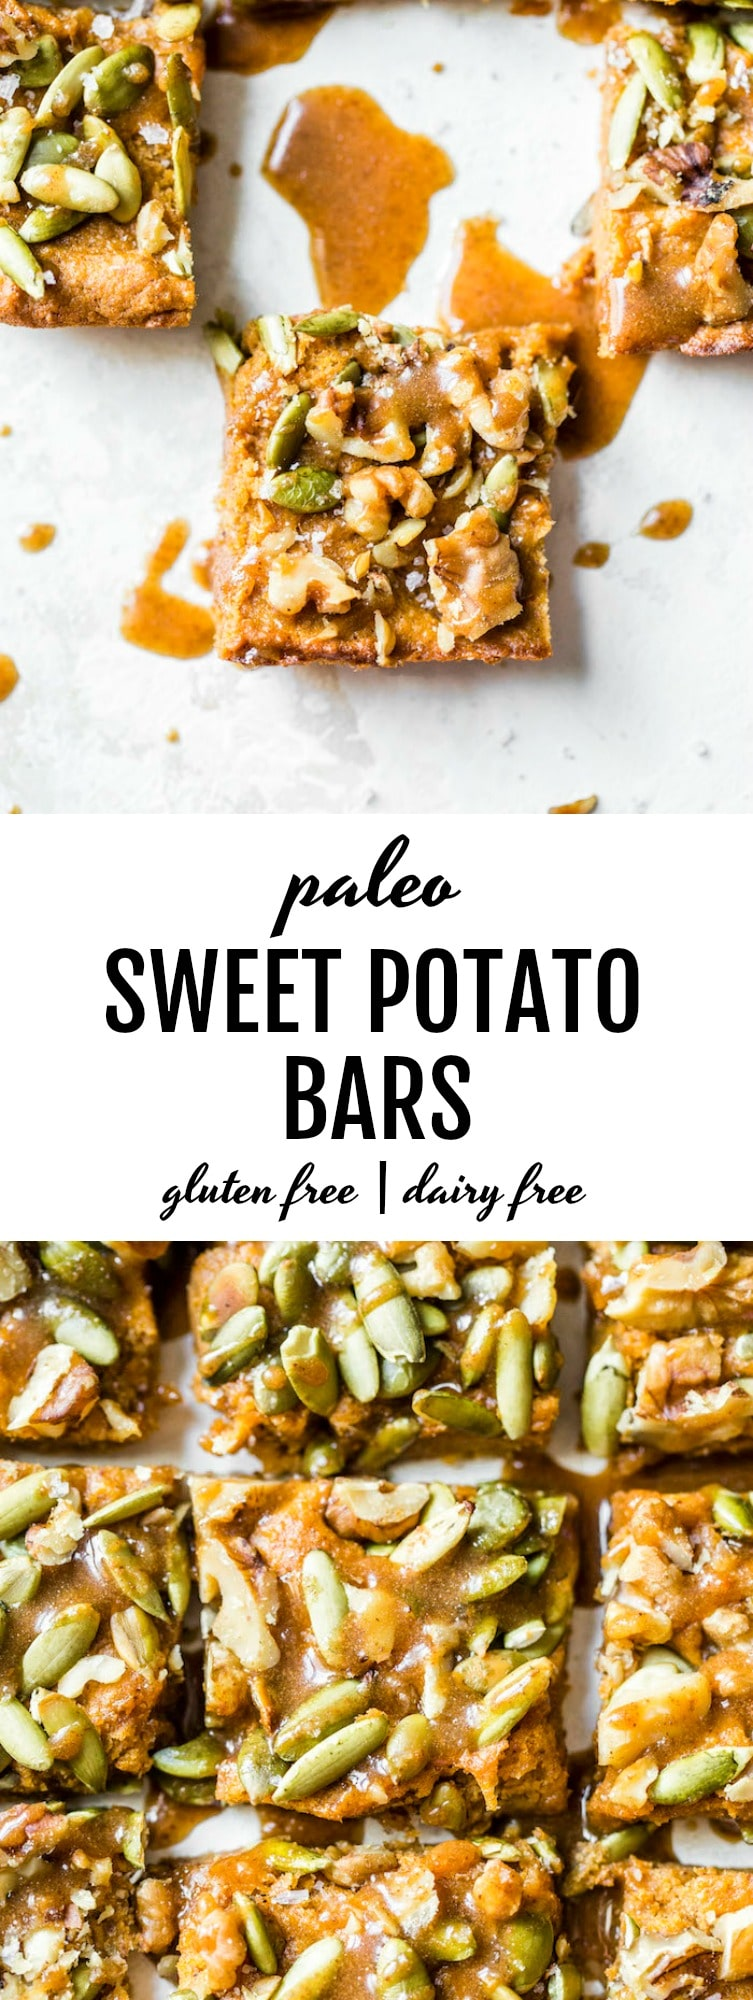 Paleo Sweet Potato Bars made with mashed sweet potato, almond flour and topped with a sweet maple almond glaze #paleo | thealmondeater.com